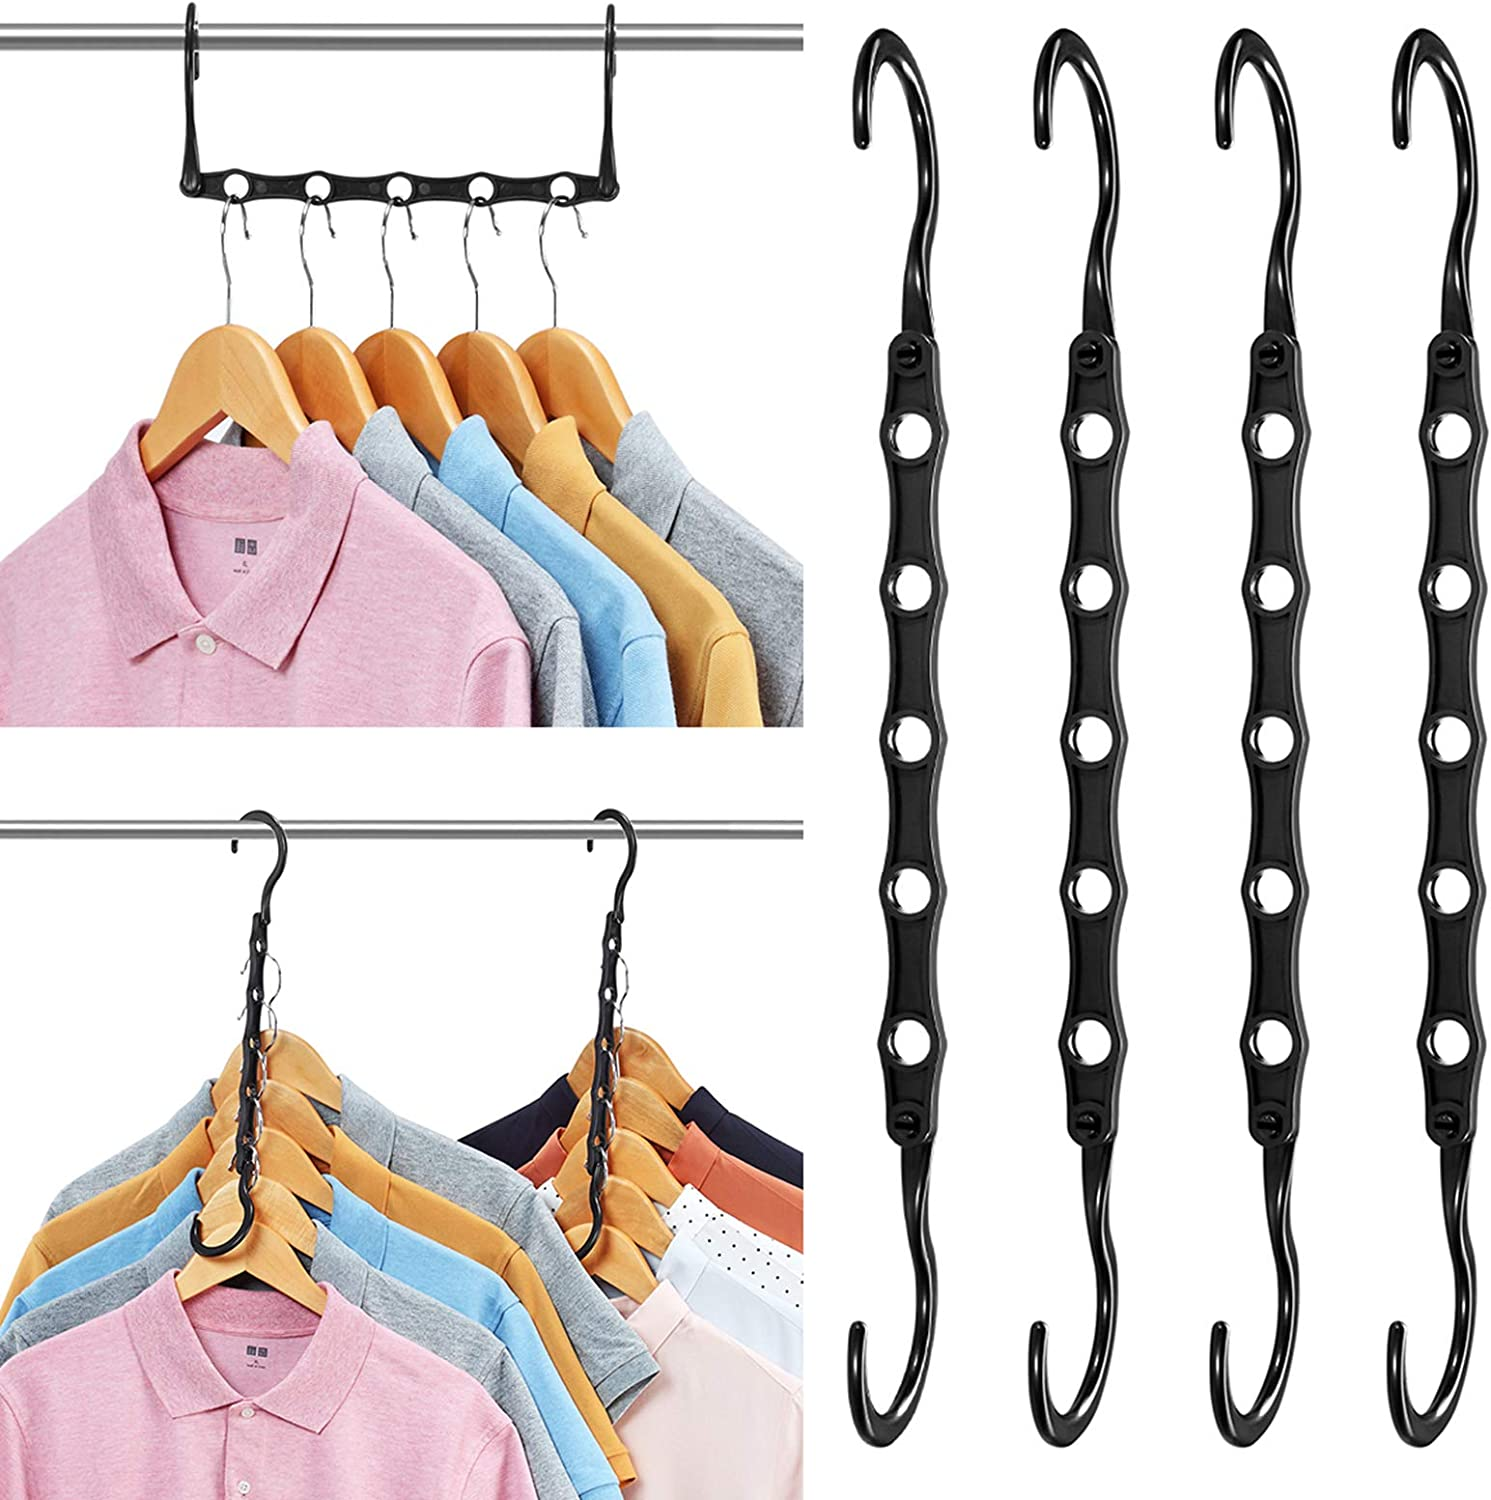 Spring new work one after another Limited time for free shipping AMKUFO 20 Pack Magic Hangers Closet Saving S Space